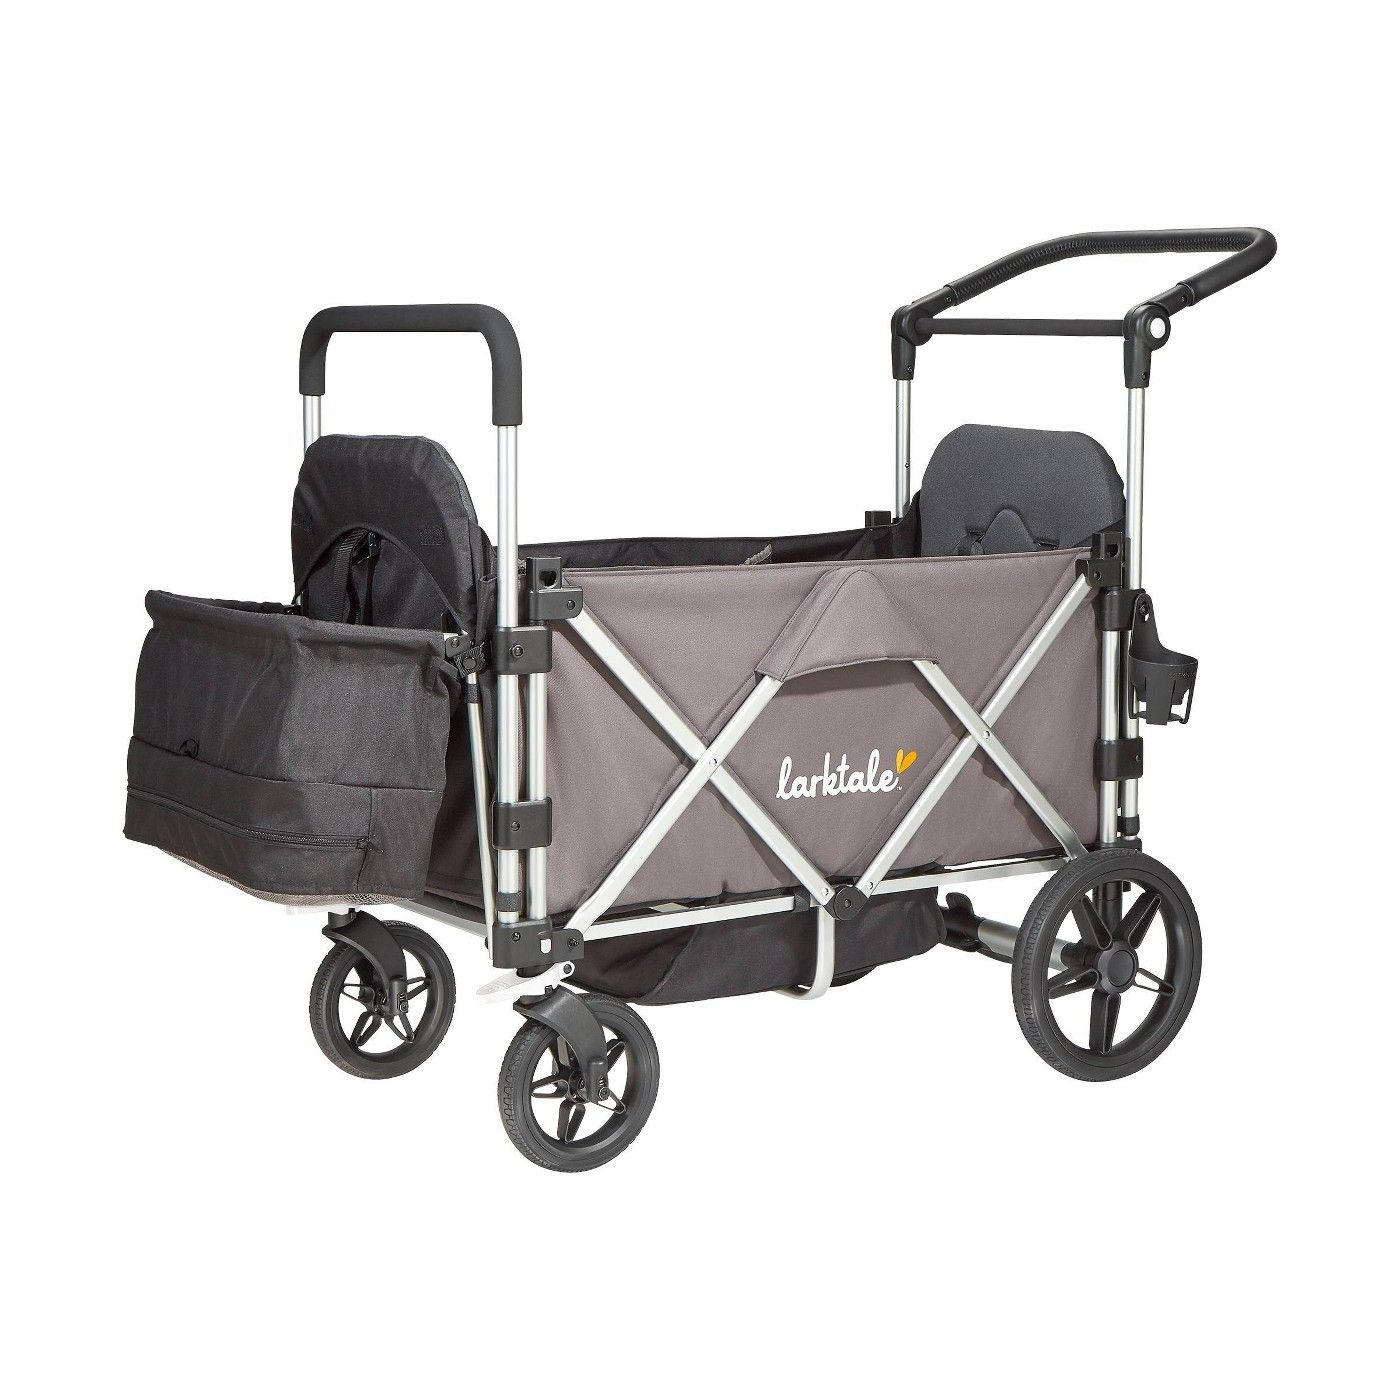 Larktale Caravan Stroller Wagon Chassis Mornington Gray